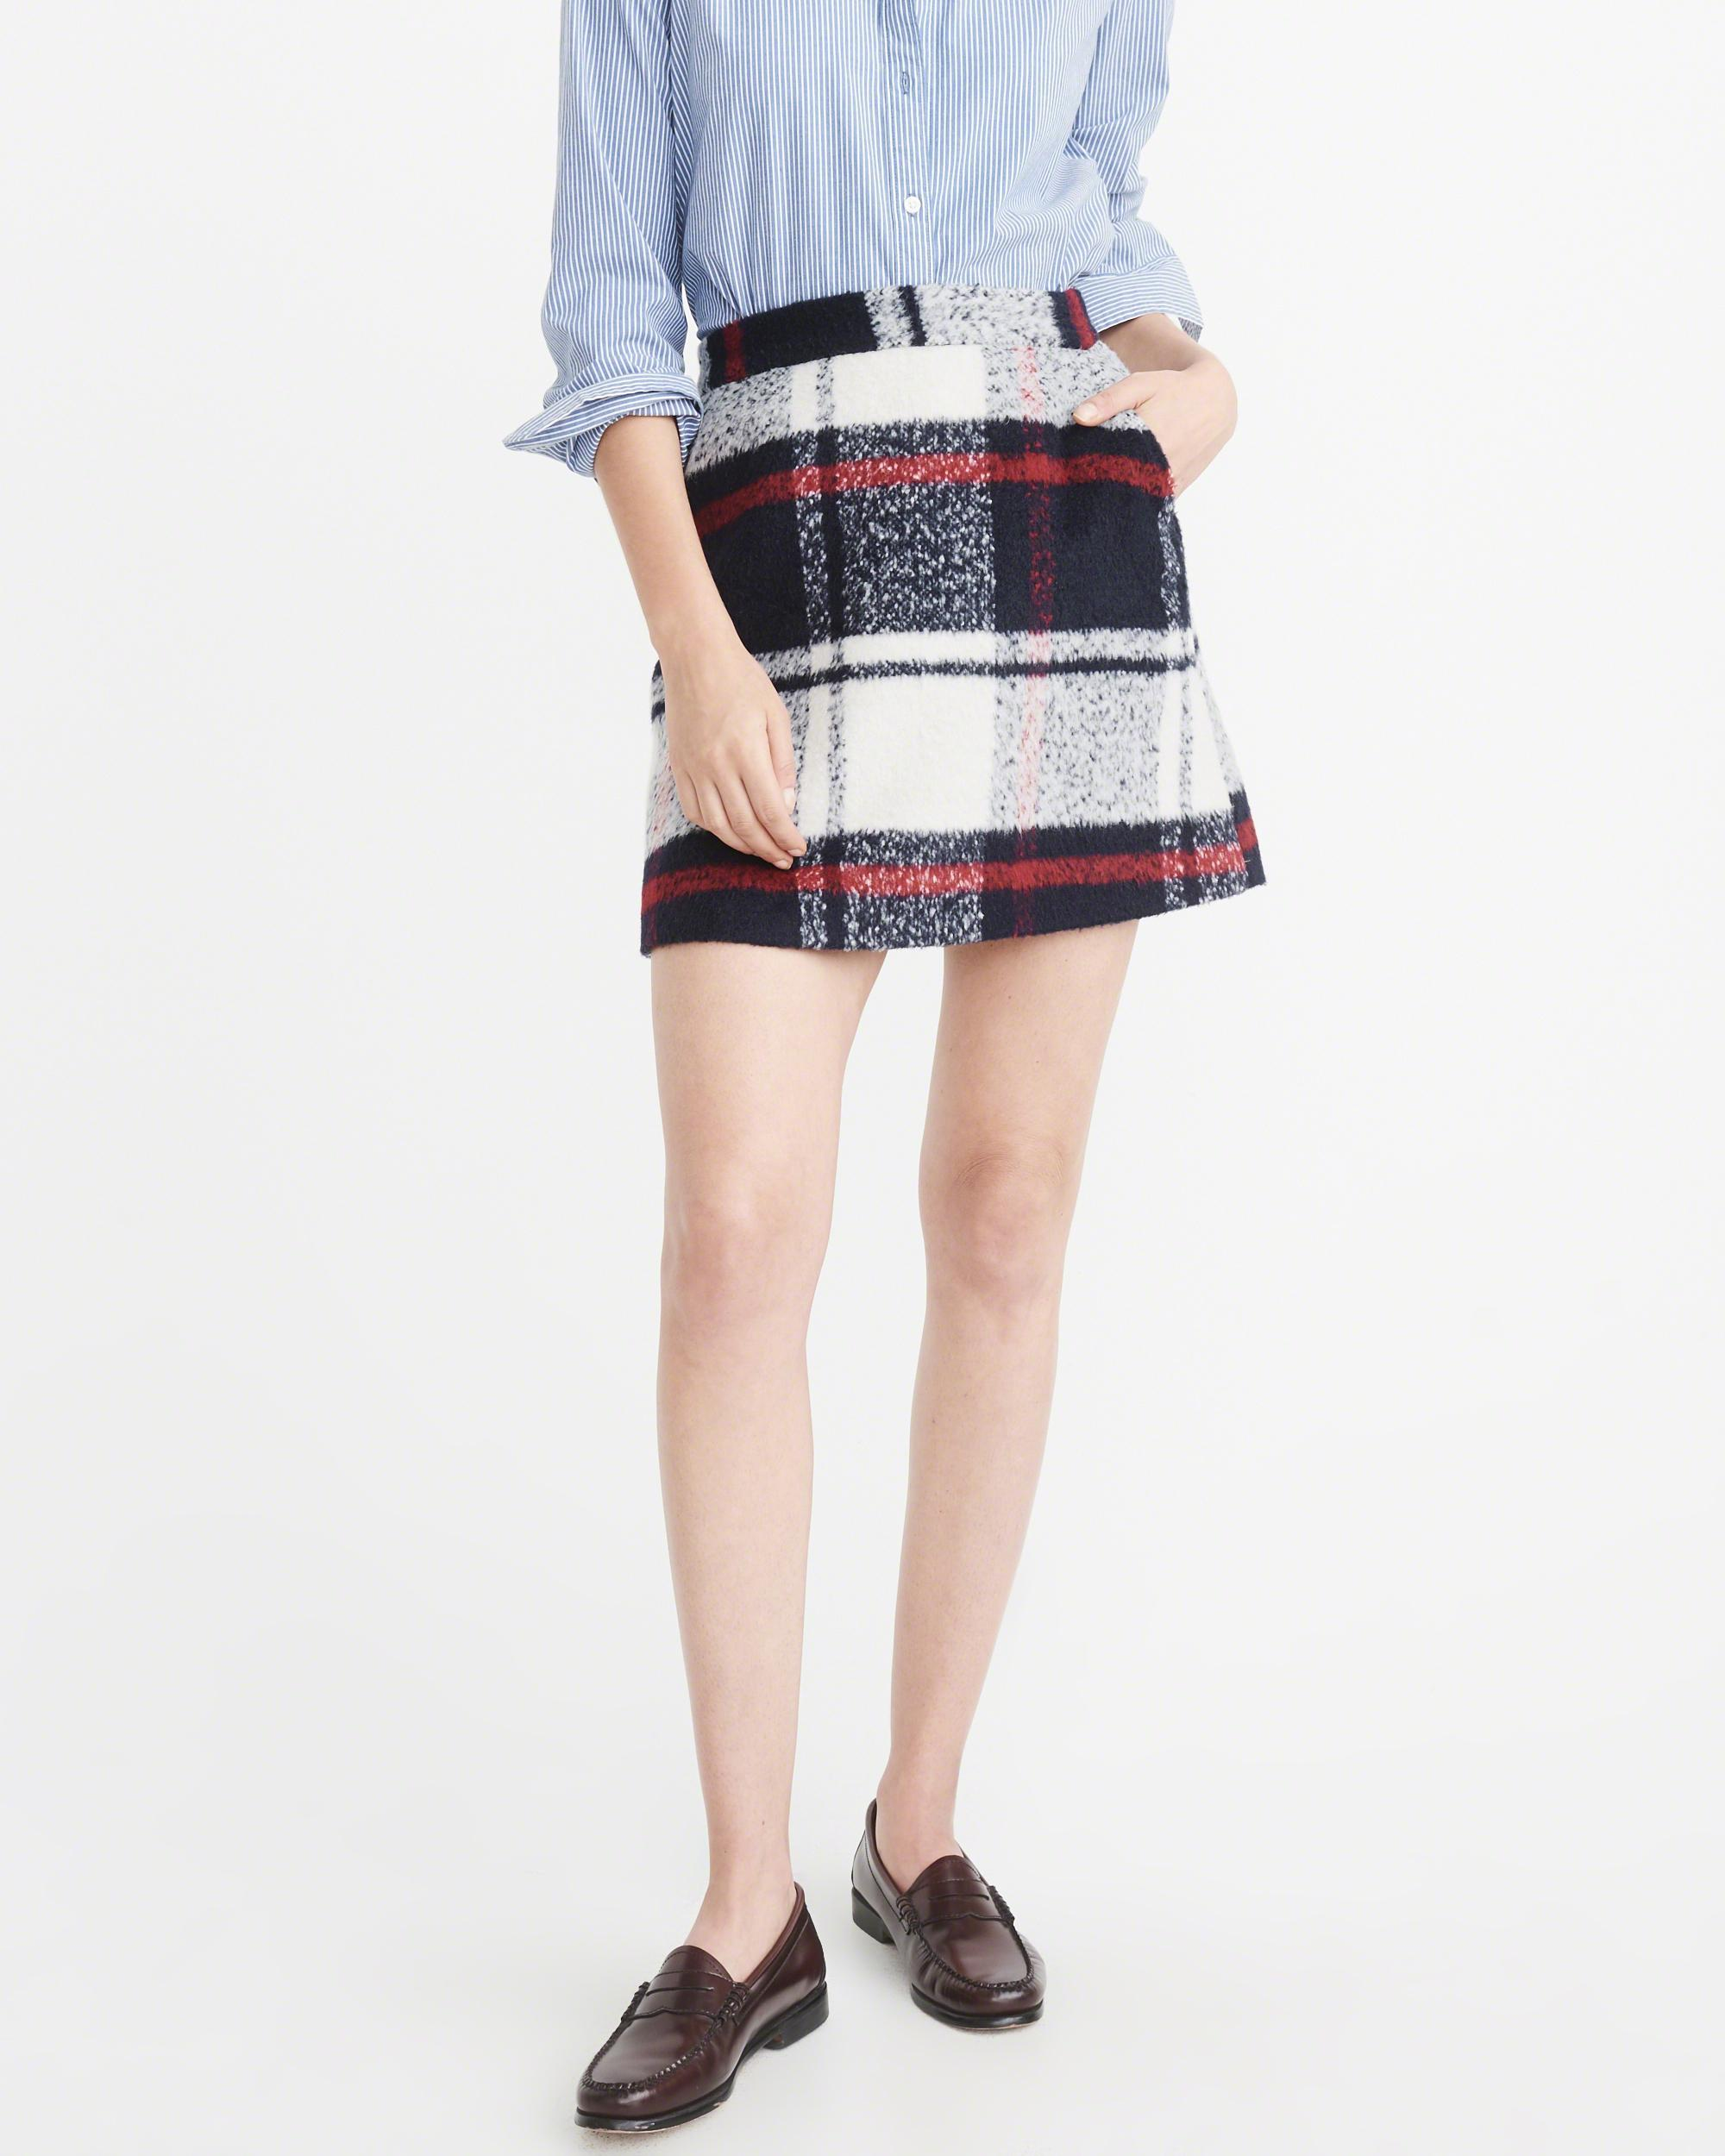 3a8a74acdf Wool Plaid Mini Skirt - Image Skirt and Slipper Imagepv.co